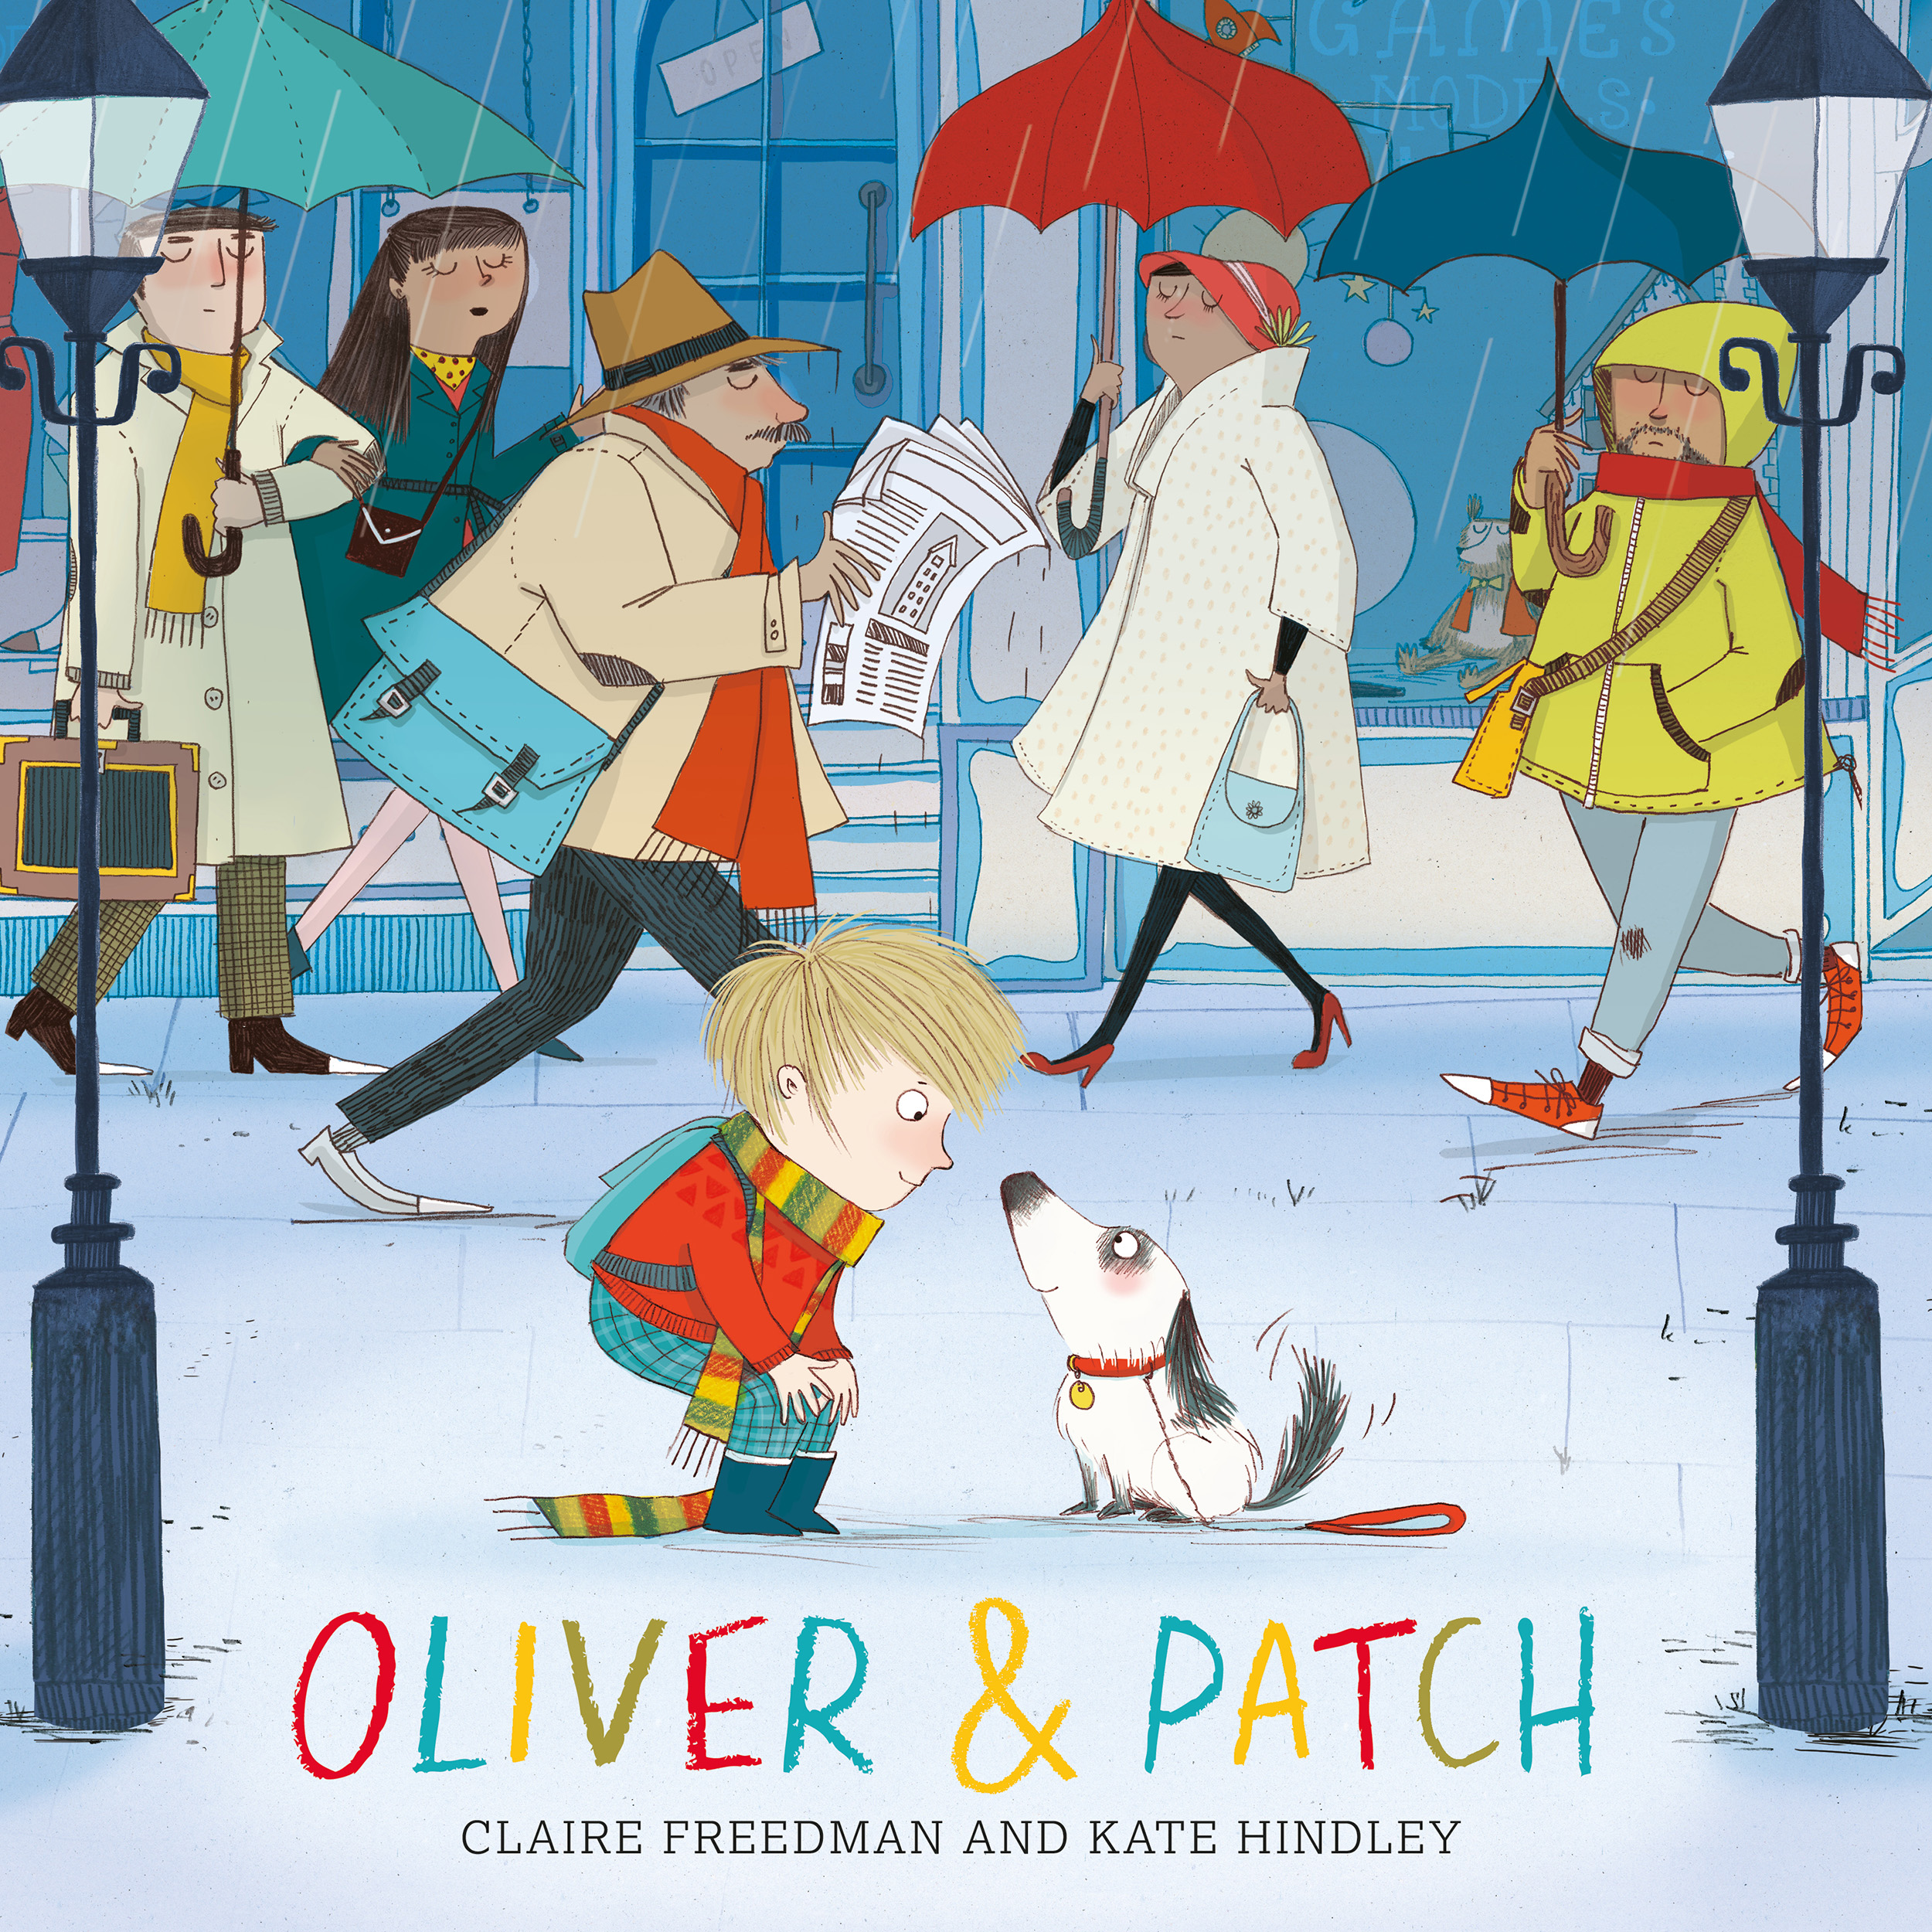 Oliver And Patch Book By Claire Freedman Kate Hindley Official Publisher Page Simon Schuster Patch 11.1 bug megathread and patch discussion. oliver and patch book by claire